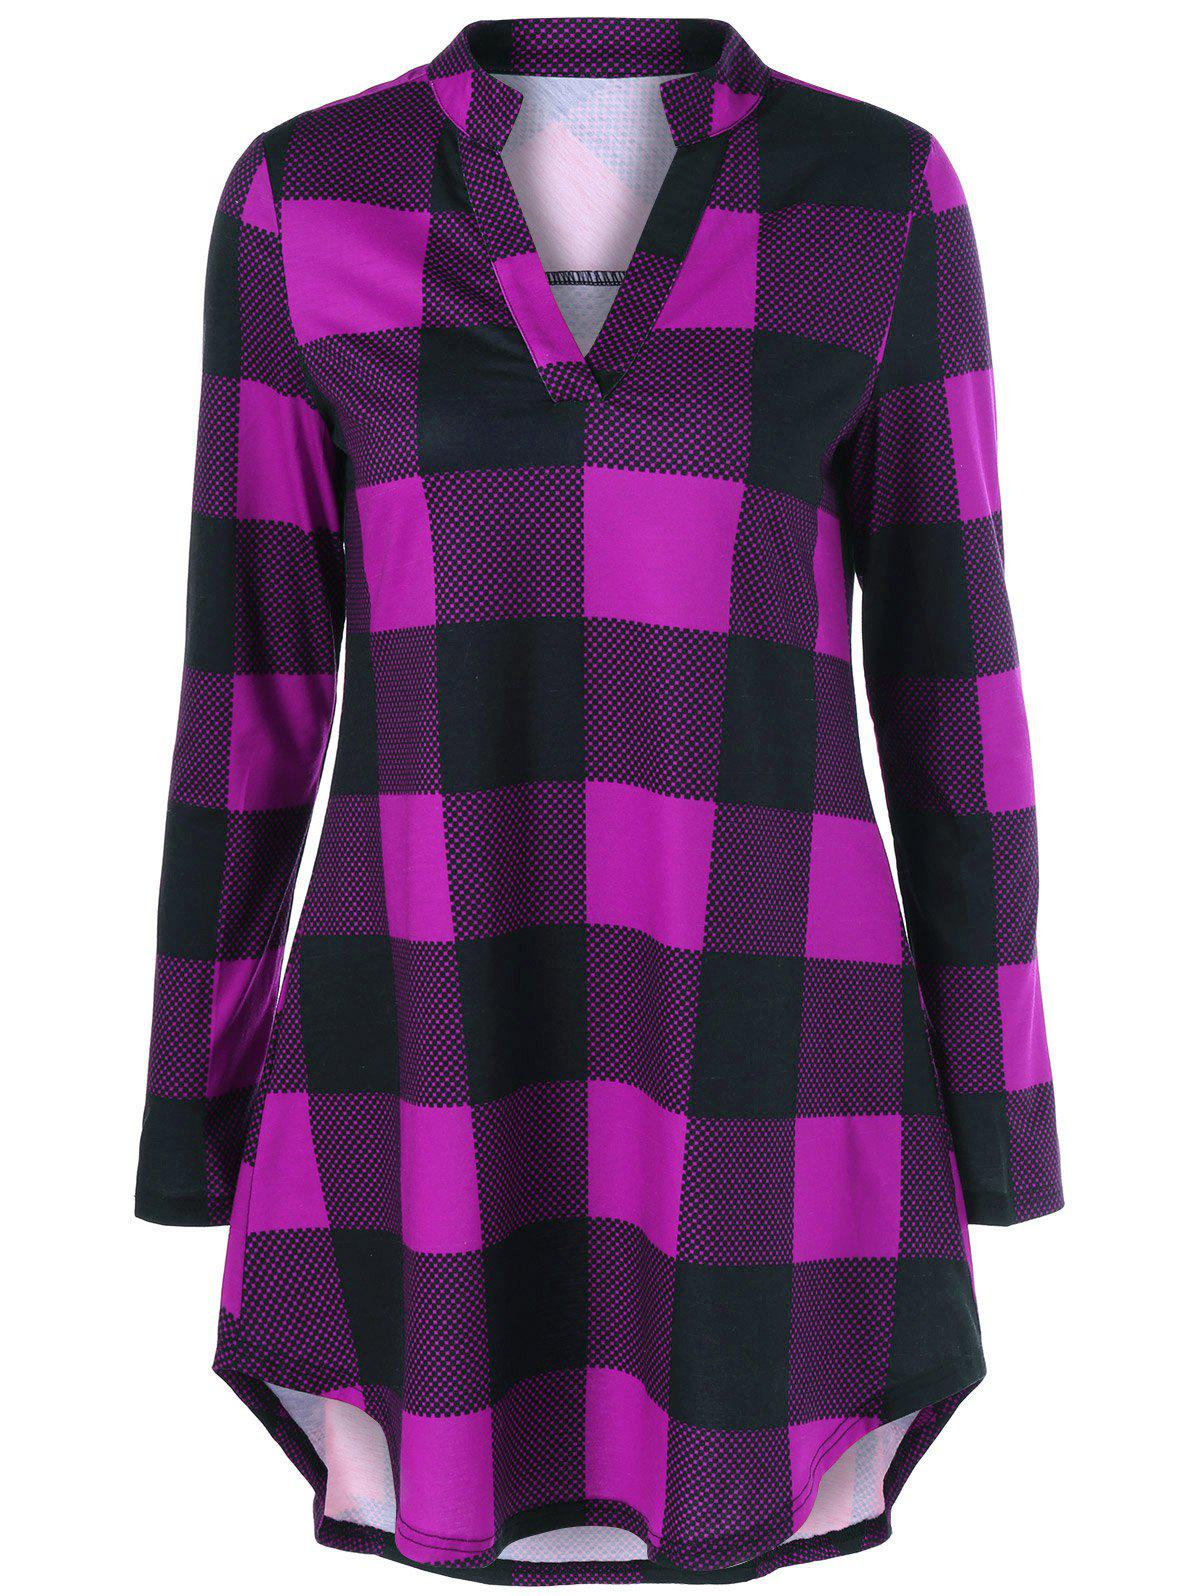 Split Neck Long Plaid Boyfriend T-ShirtWOMEN<br><br>Size: 4XL; Color: VIOLET ROSE; Material: Polyester,Spandex; Sleeve Length: Full; Collar: V-Neck; Style: Casual; Pattern Type: Plaid; Season: Fall,Spring; Weight: 0.2780kg; Package Contents: 1 x T-Shirt;